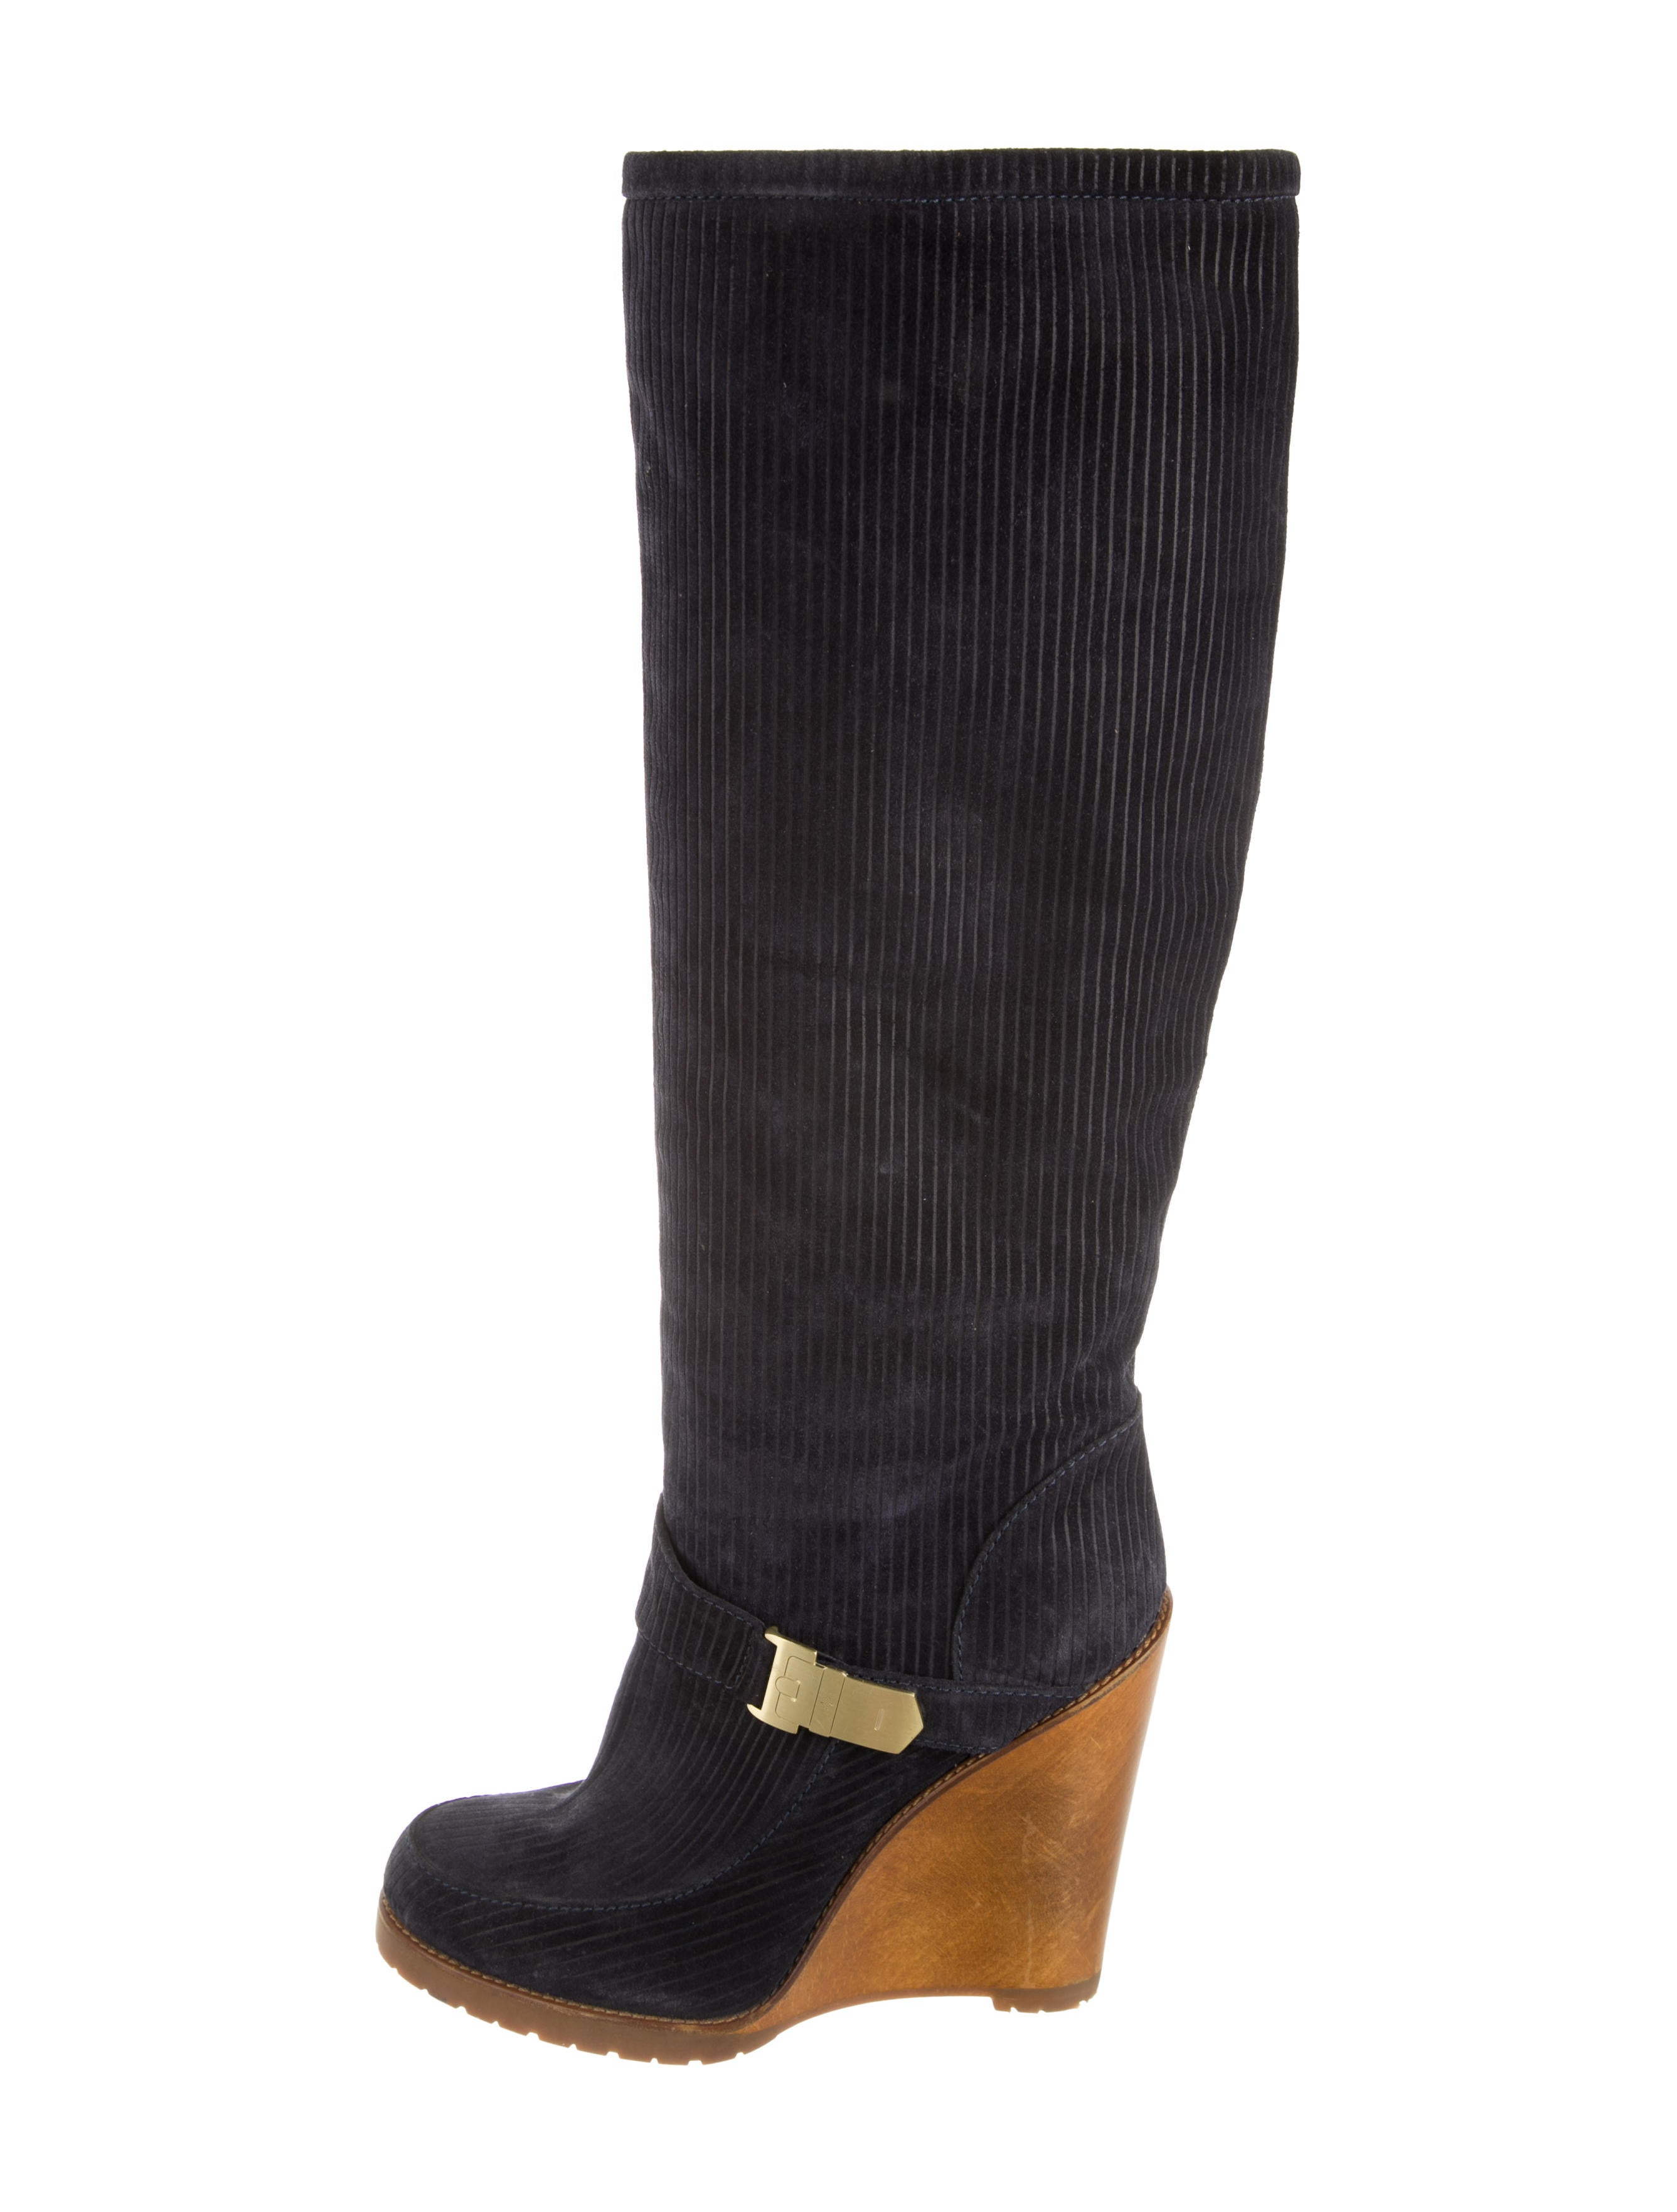 mulberry suede wedge boots shoes mul21096 the realreal